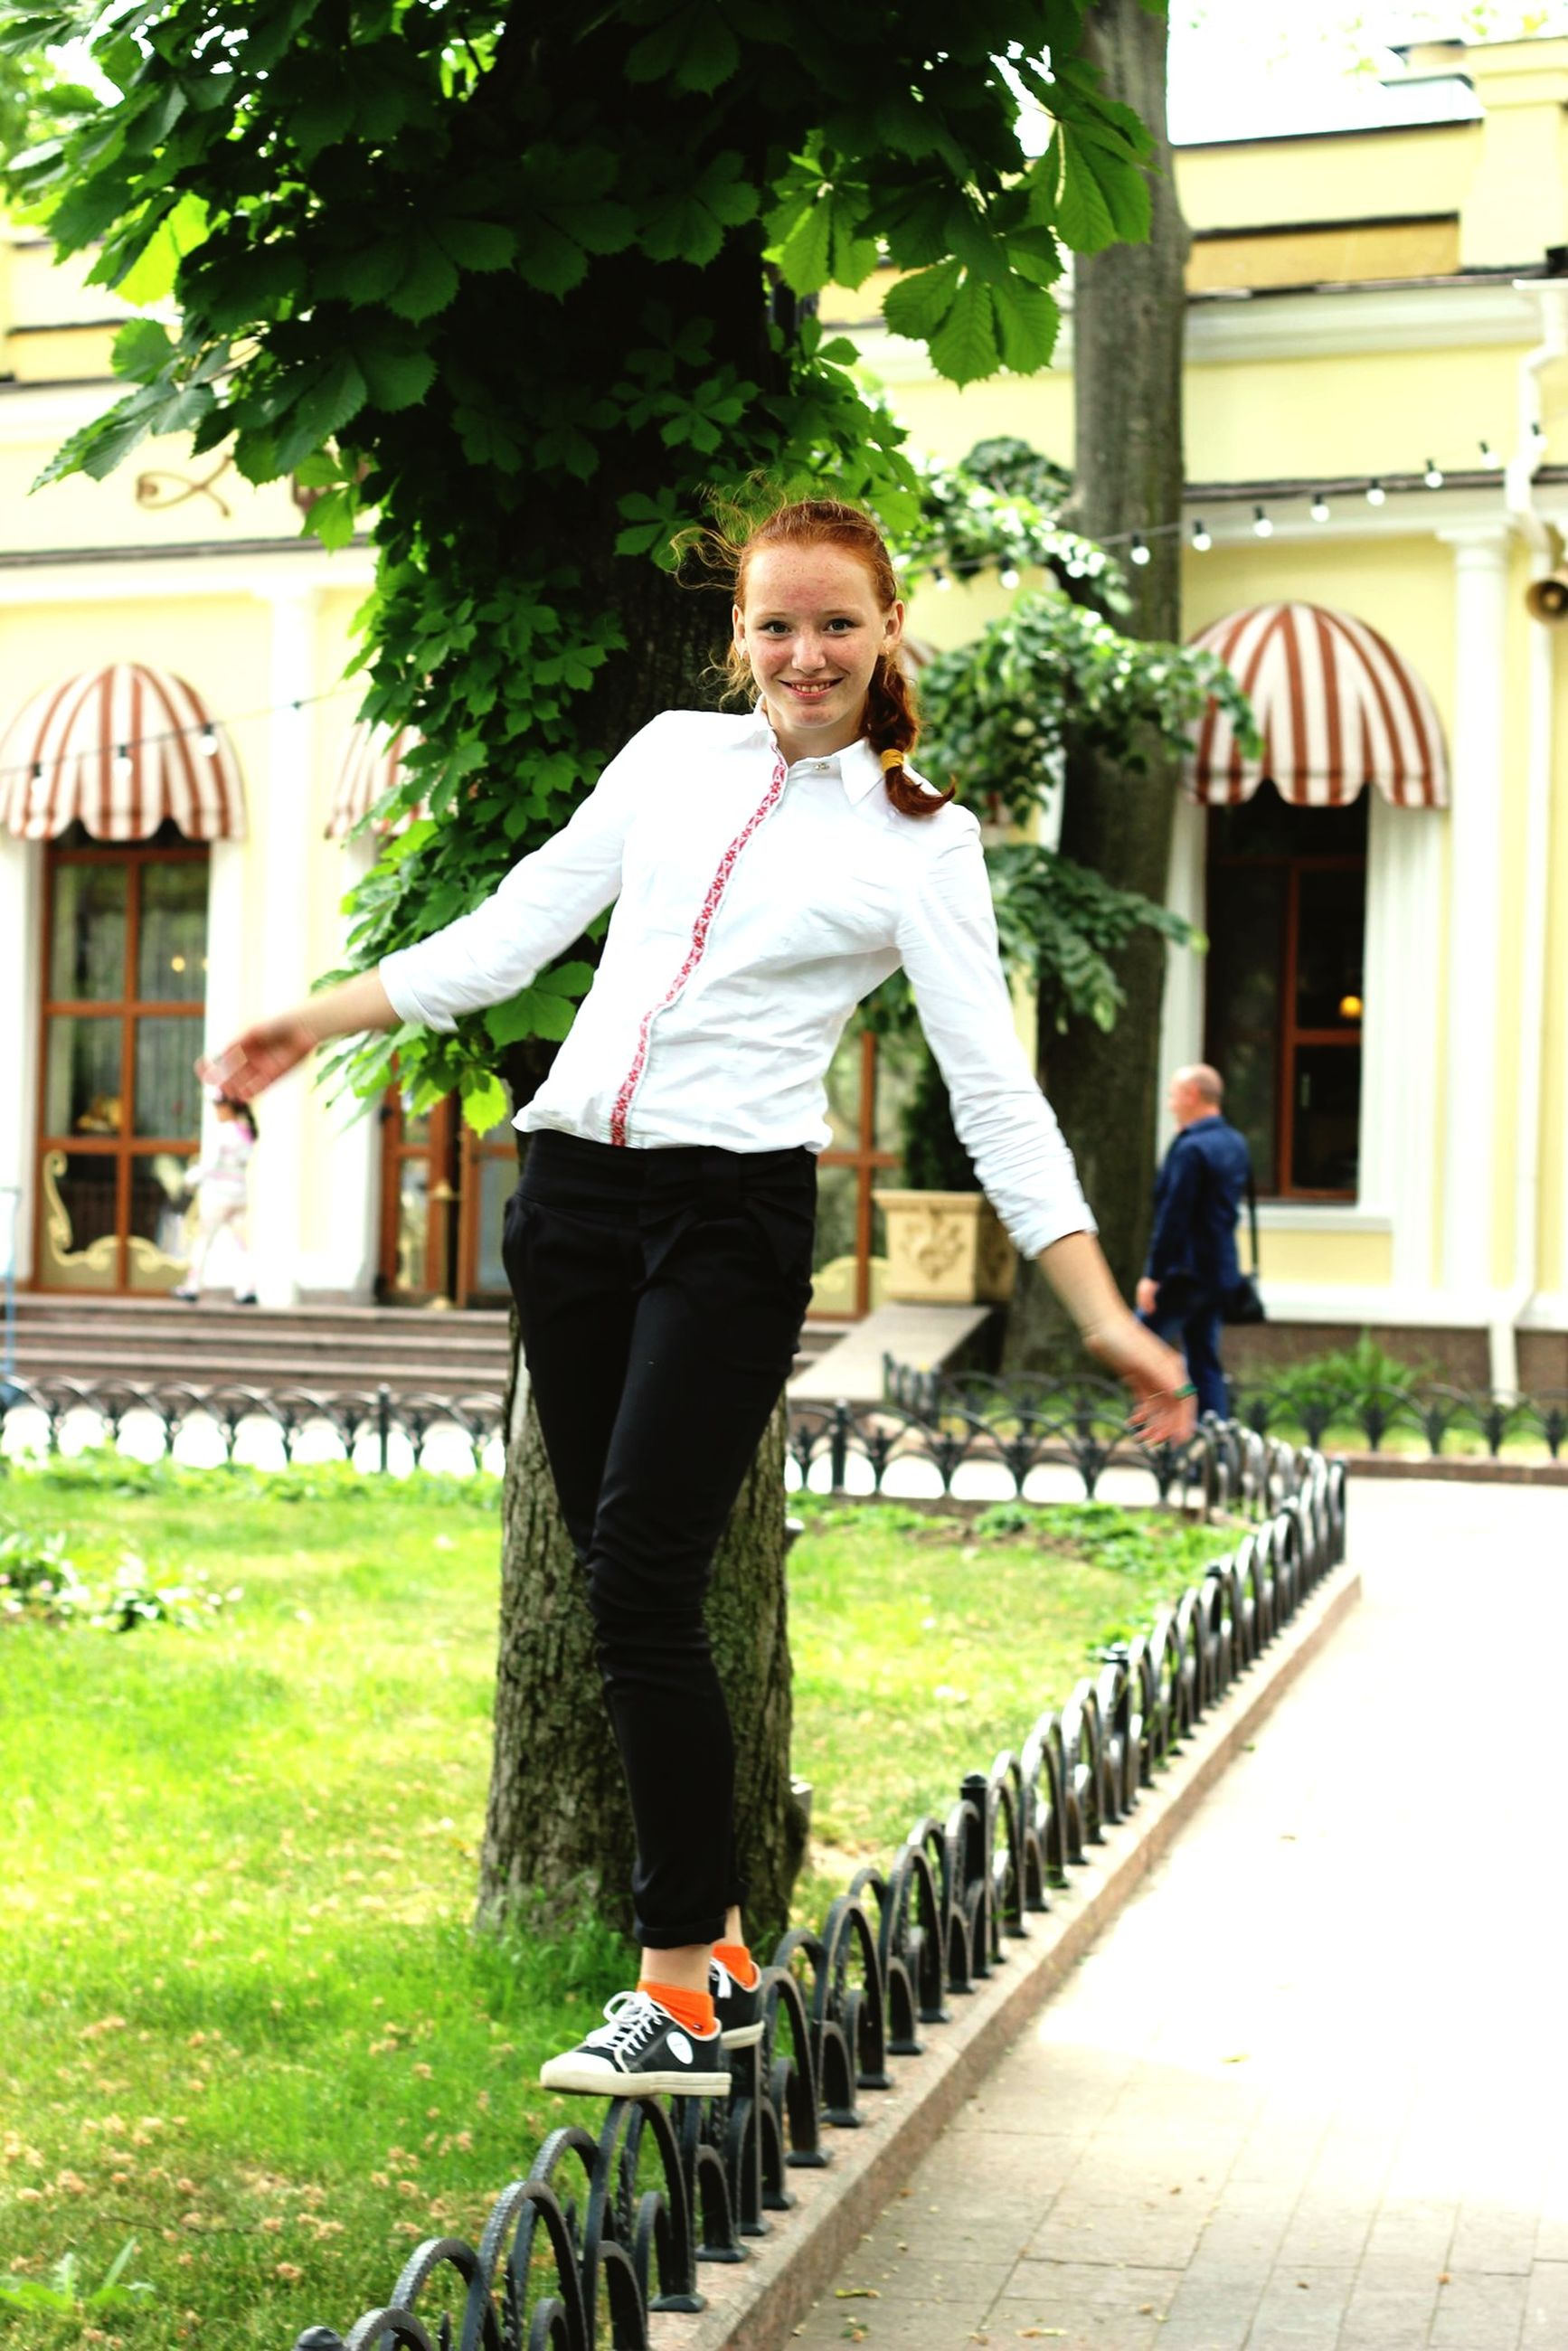 lifestyles, casual clothing, full length, building exterior, leisure activity, built structure, architecture, young adult, grass, standing, person, front view, young women, tree, green color, looking at camera, day